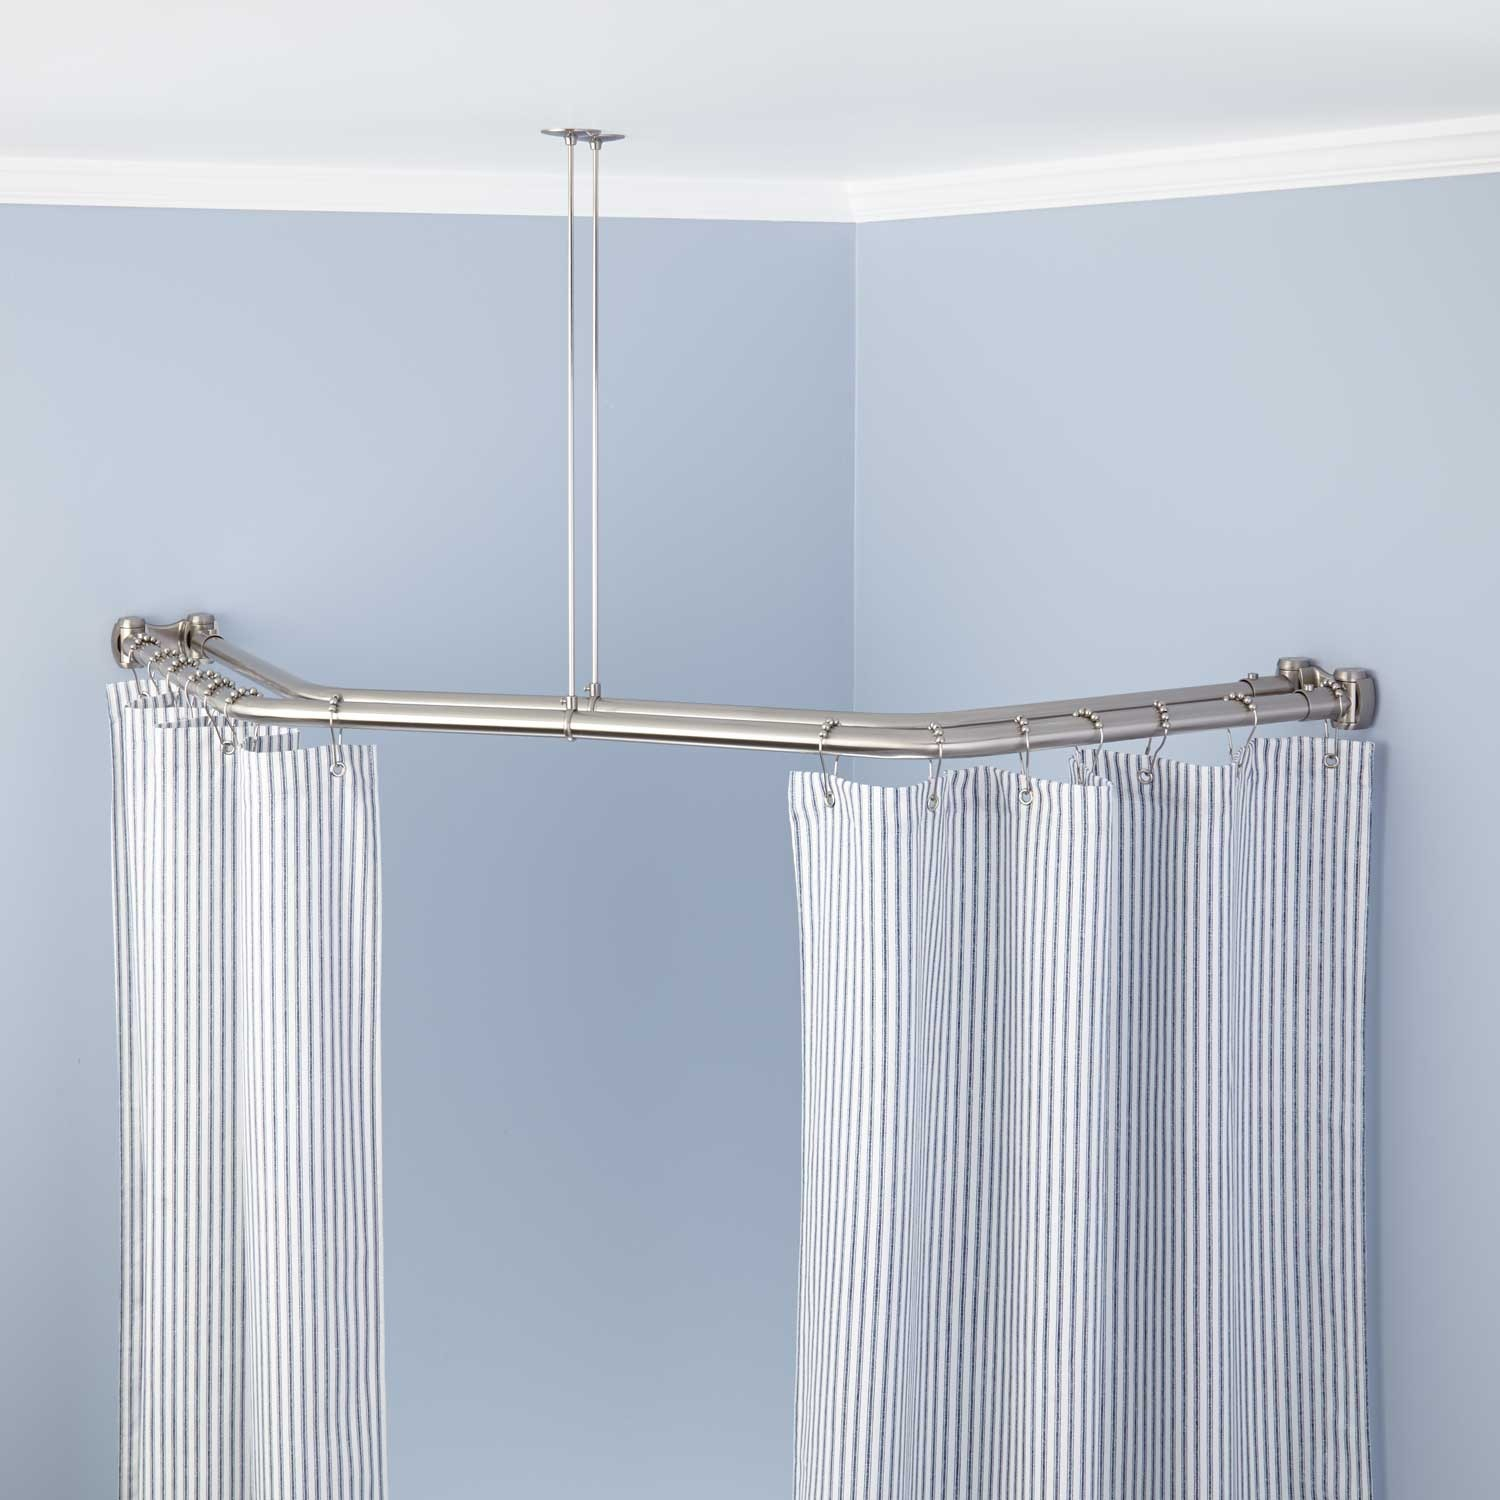 windows and corner window curtains curtain rod hanging x rods wall decor